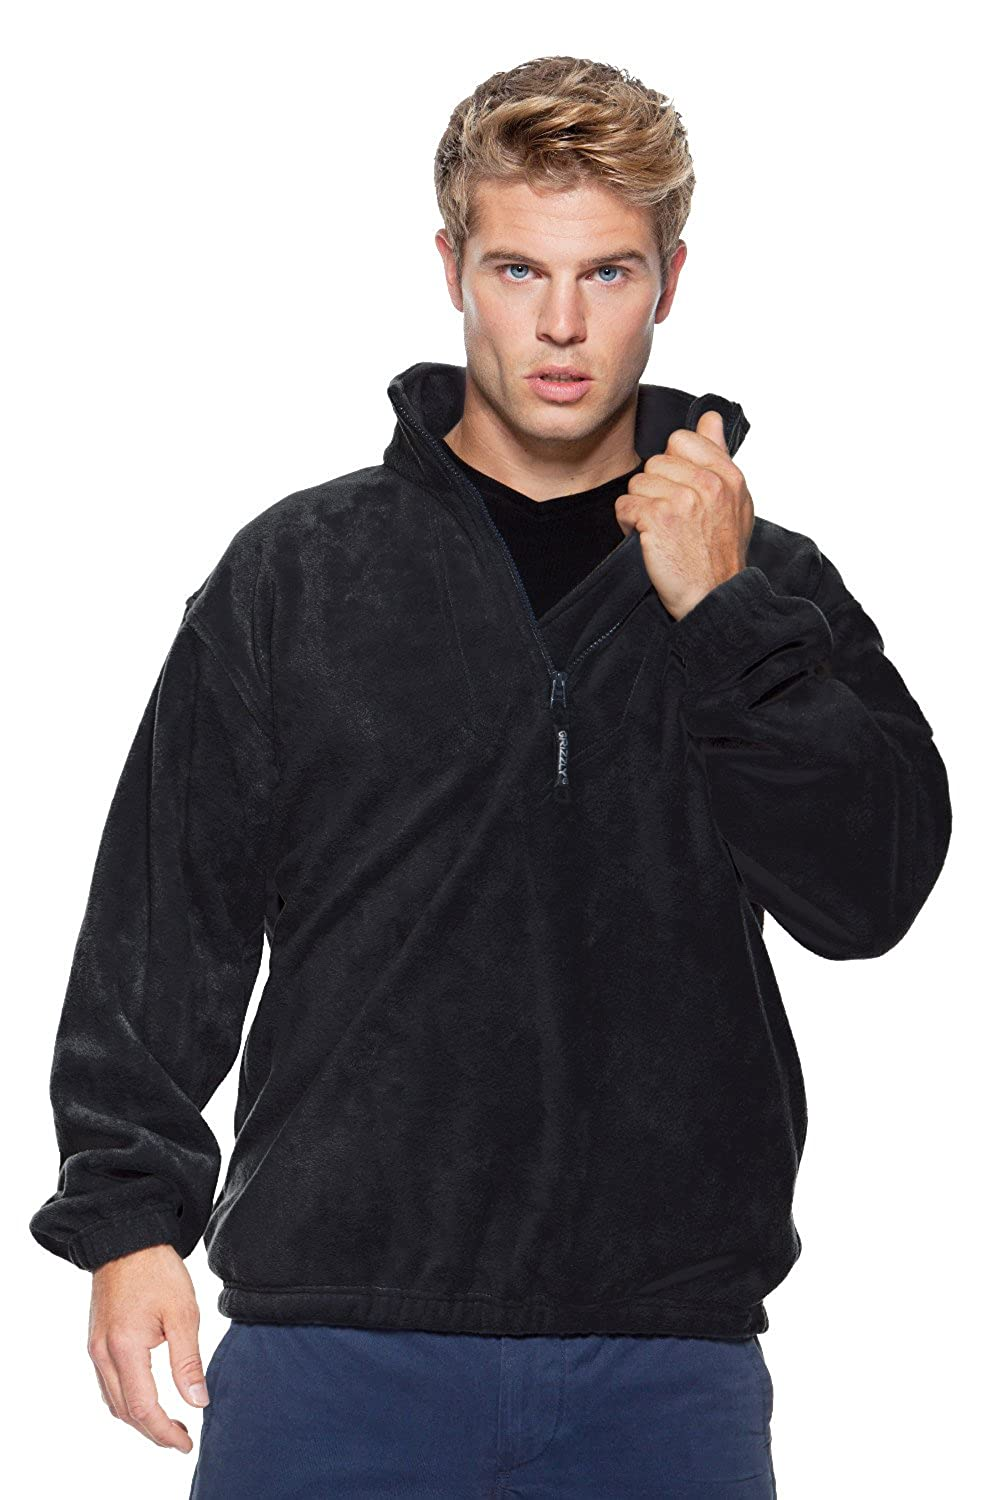 Grizzly aktiv Half Zip Fleece aktiv Grizzly f9569b